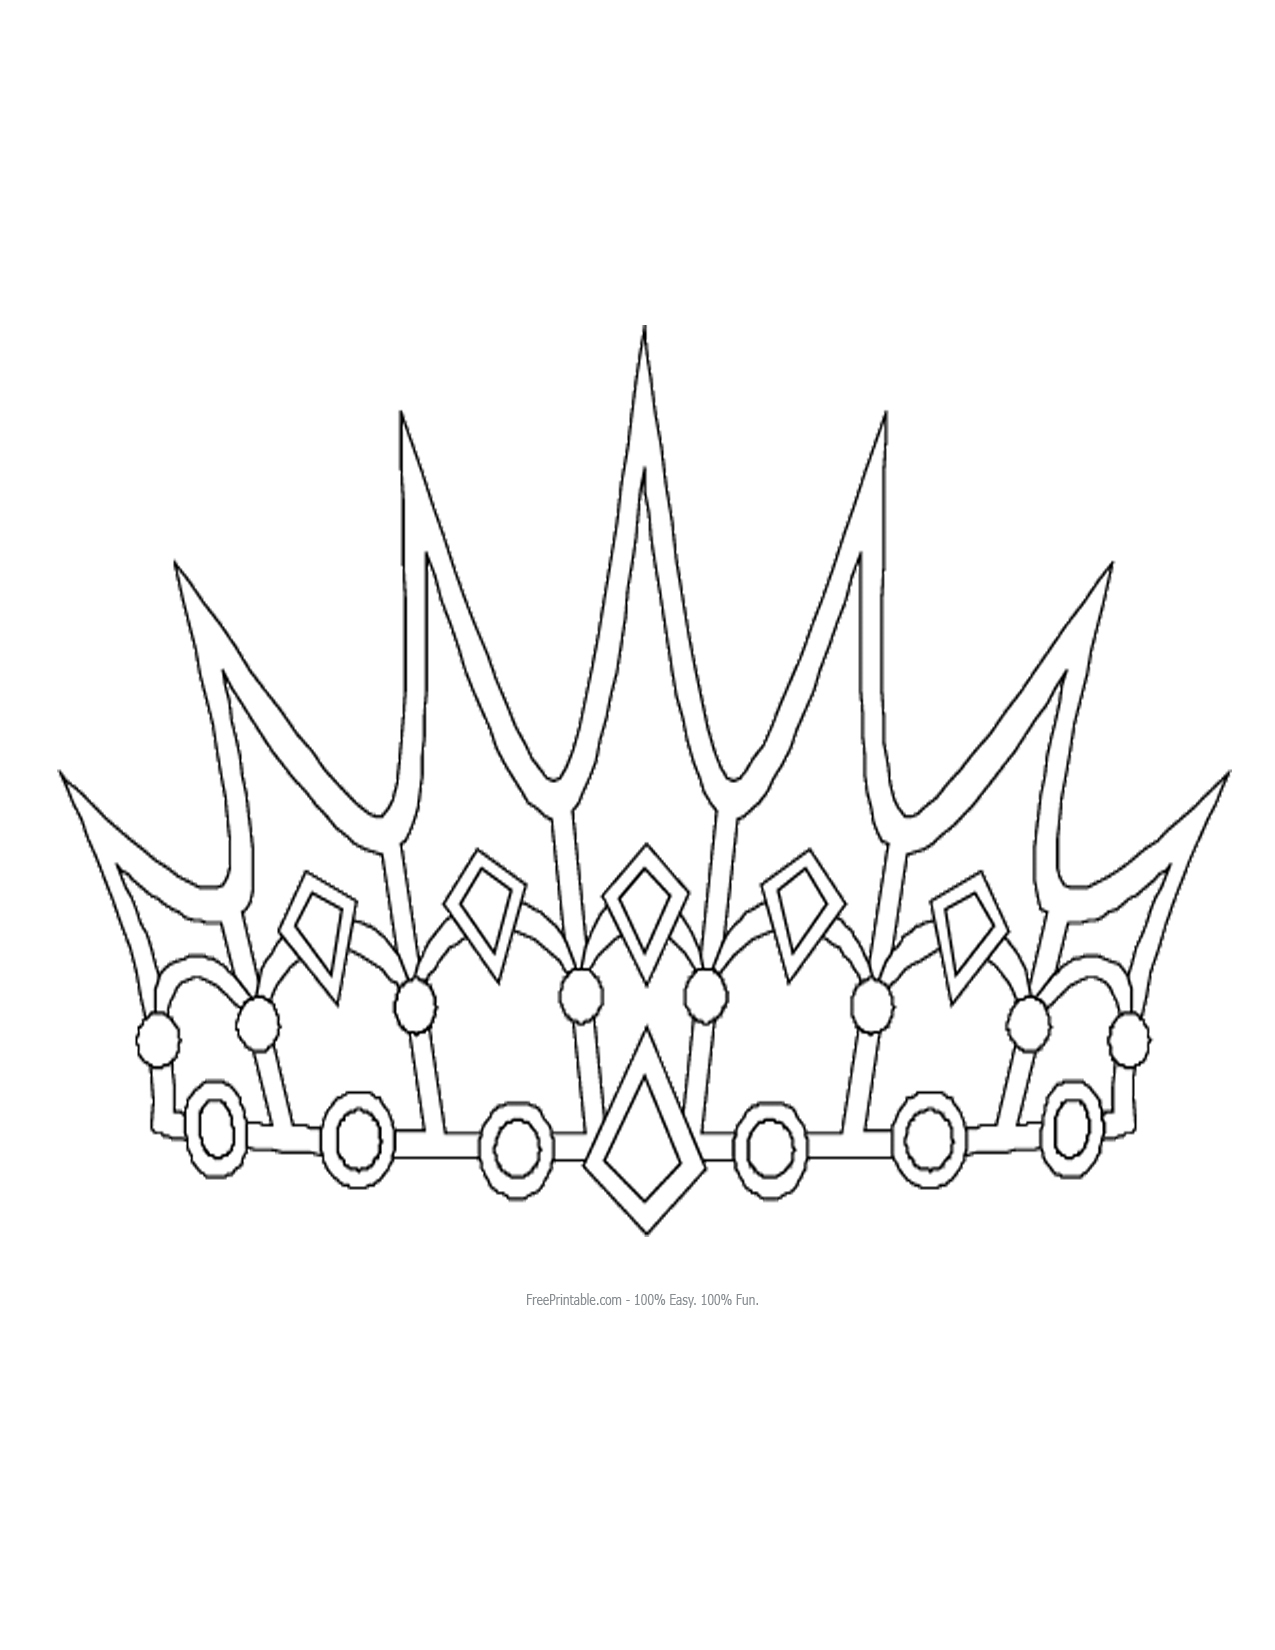 Princess crown pattern pelautscom tattoo tattooskid for Tiara template printable free